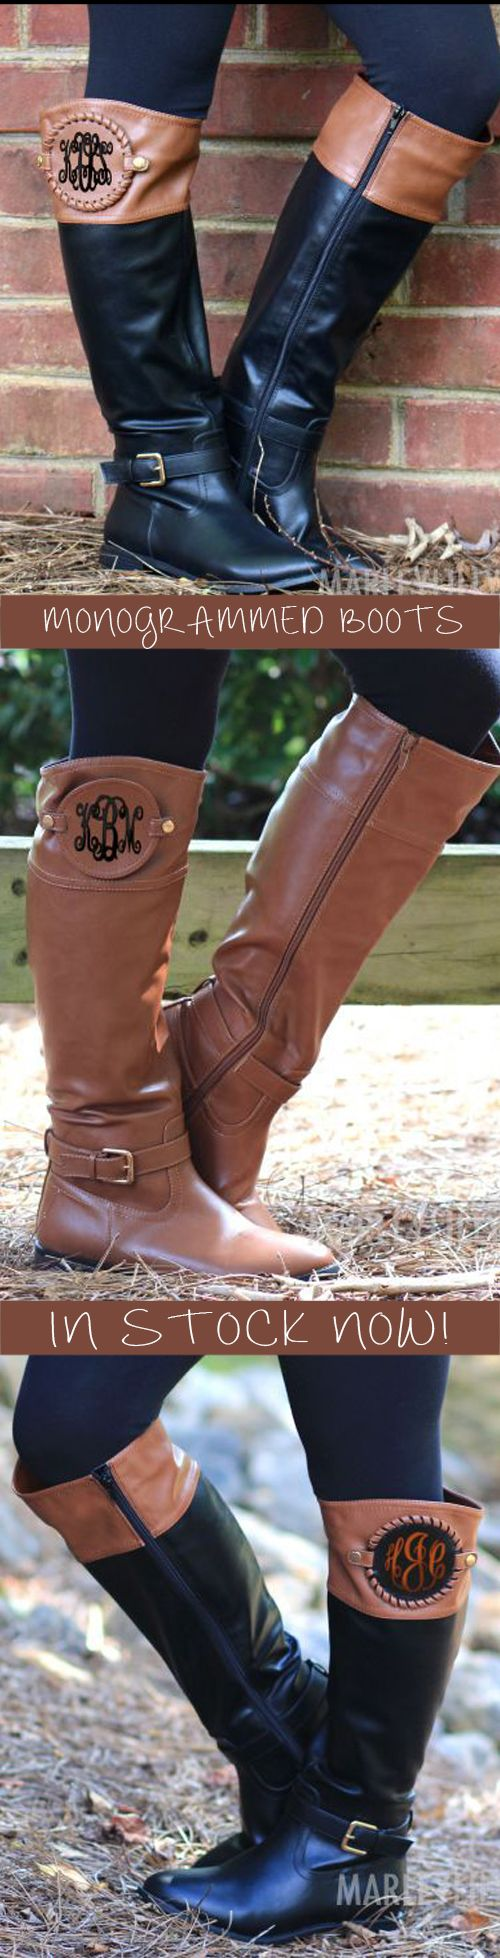 Fall Outfit must have! Monogrammed Boots from Marleylilly need to make their way into your closet! #monogramEverything